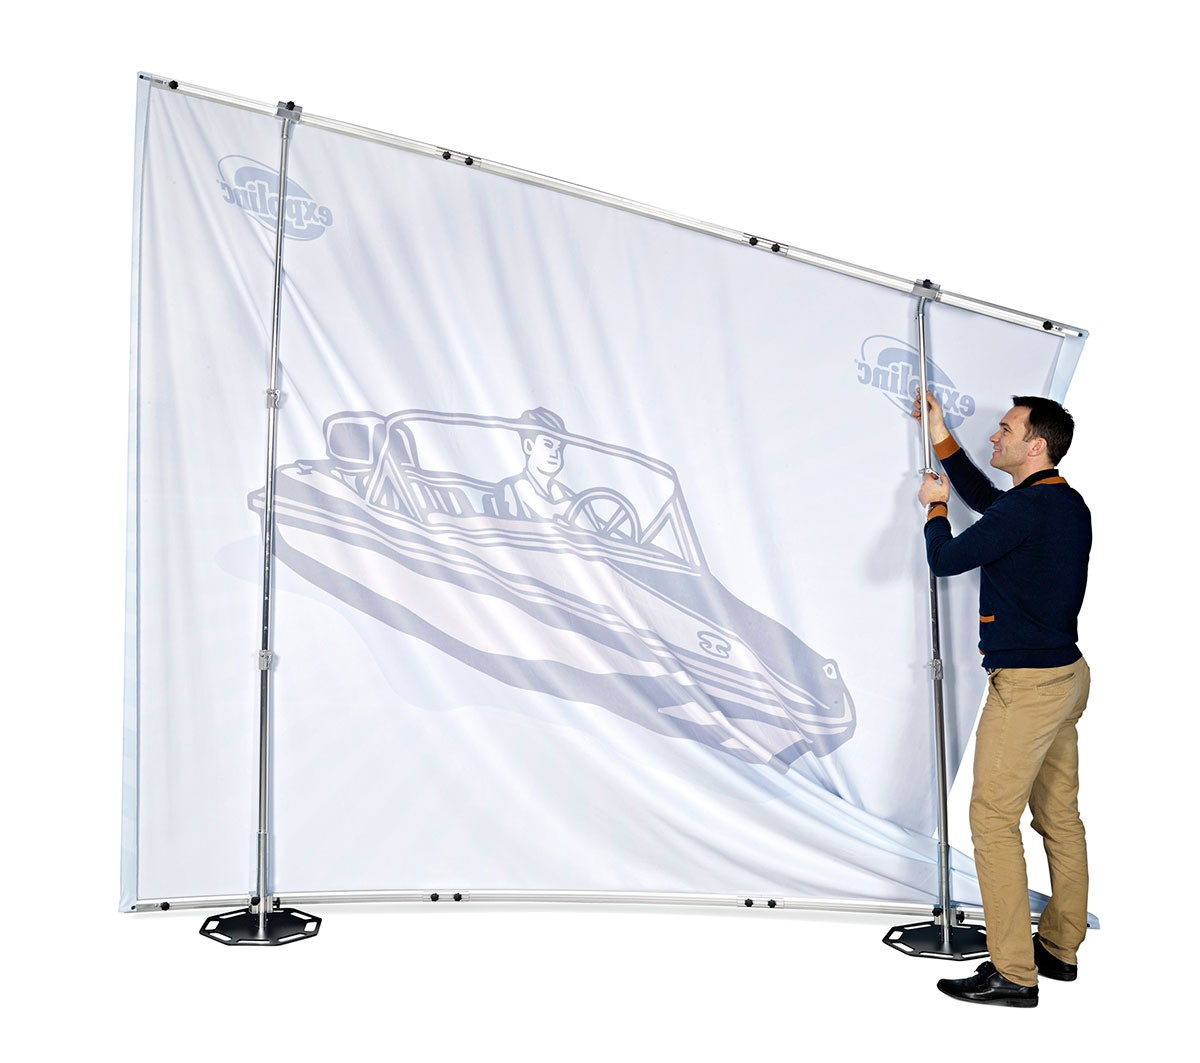 Expolinc Fabric System 20x8 Curved Wall